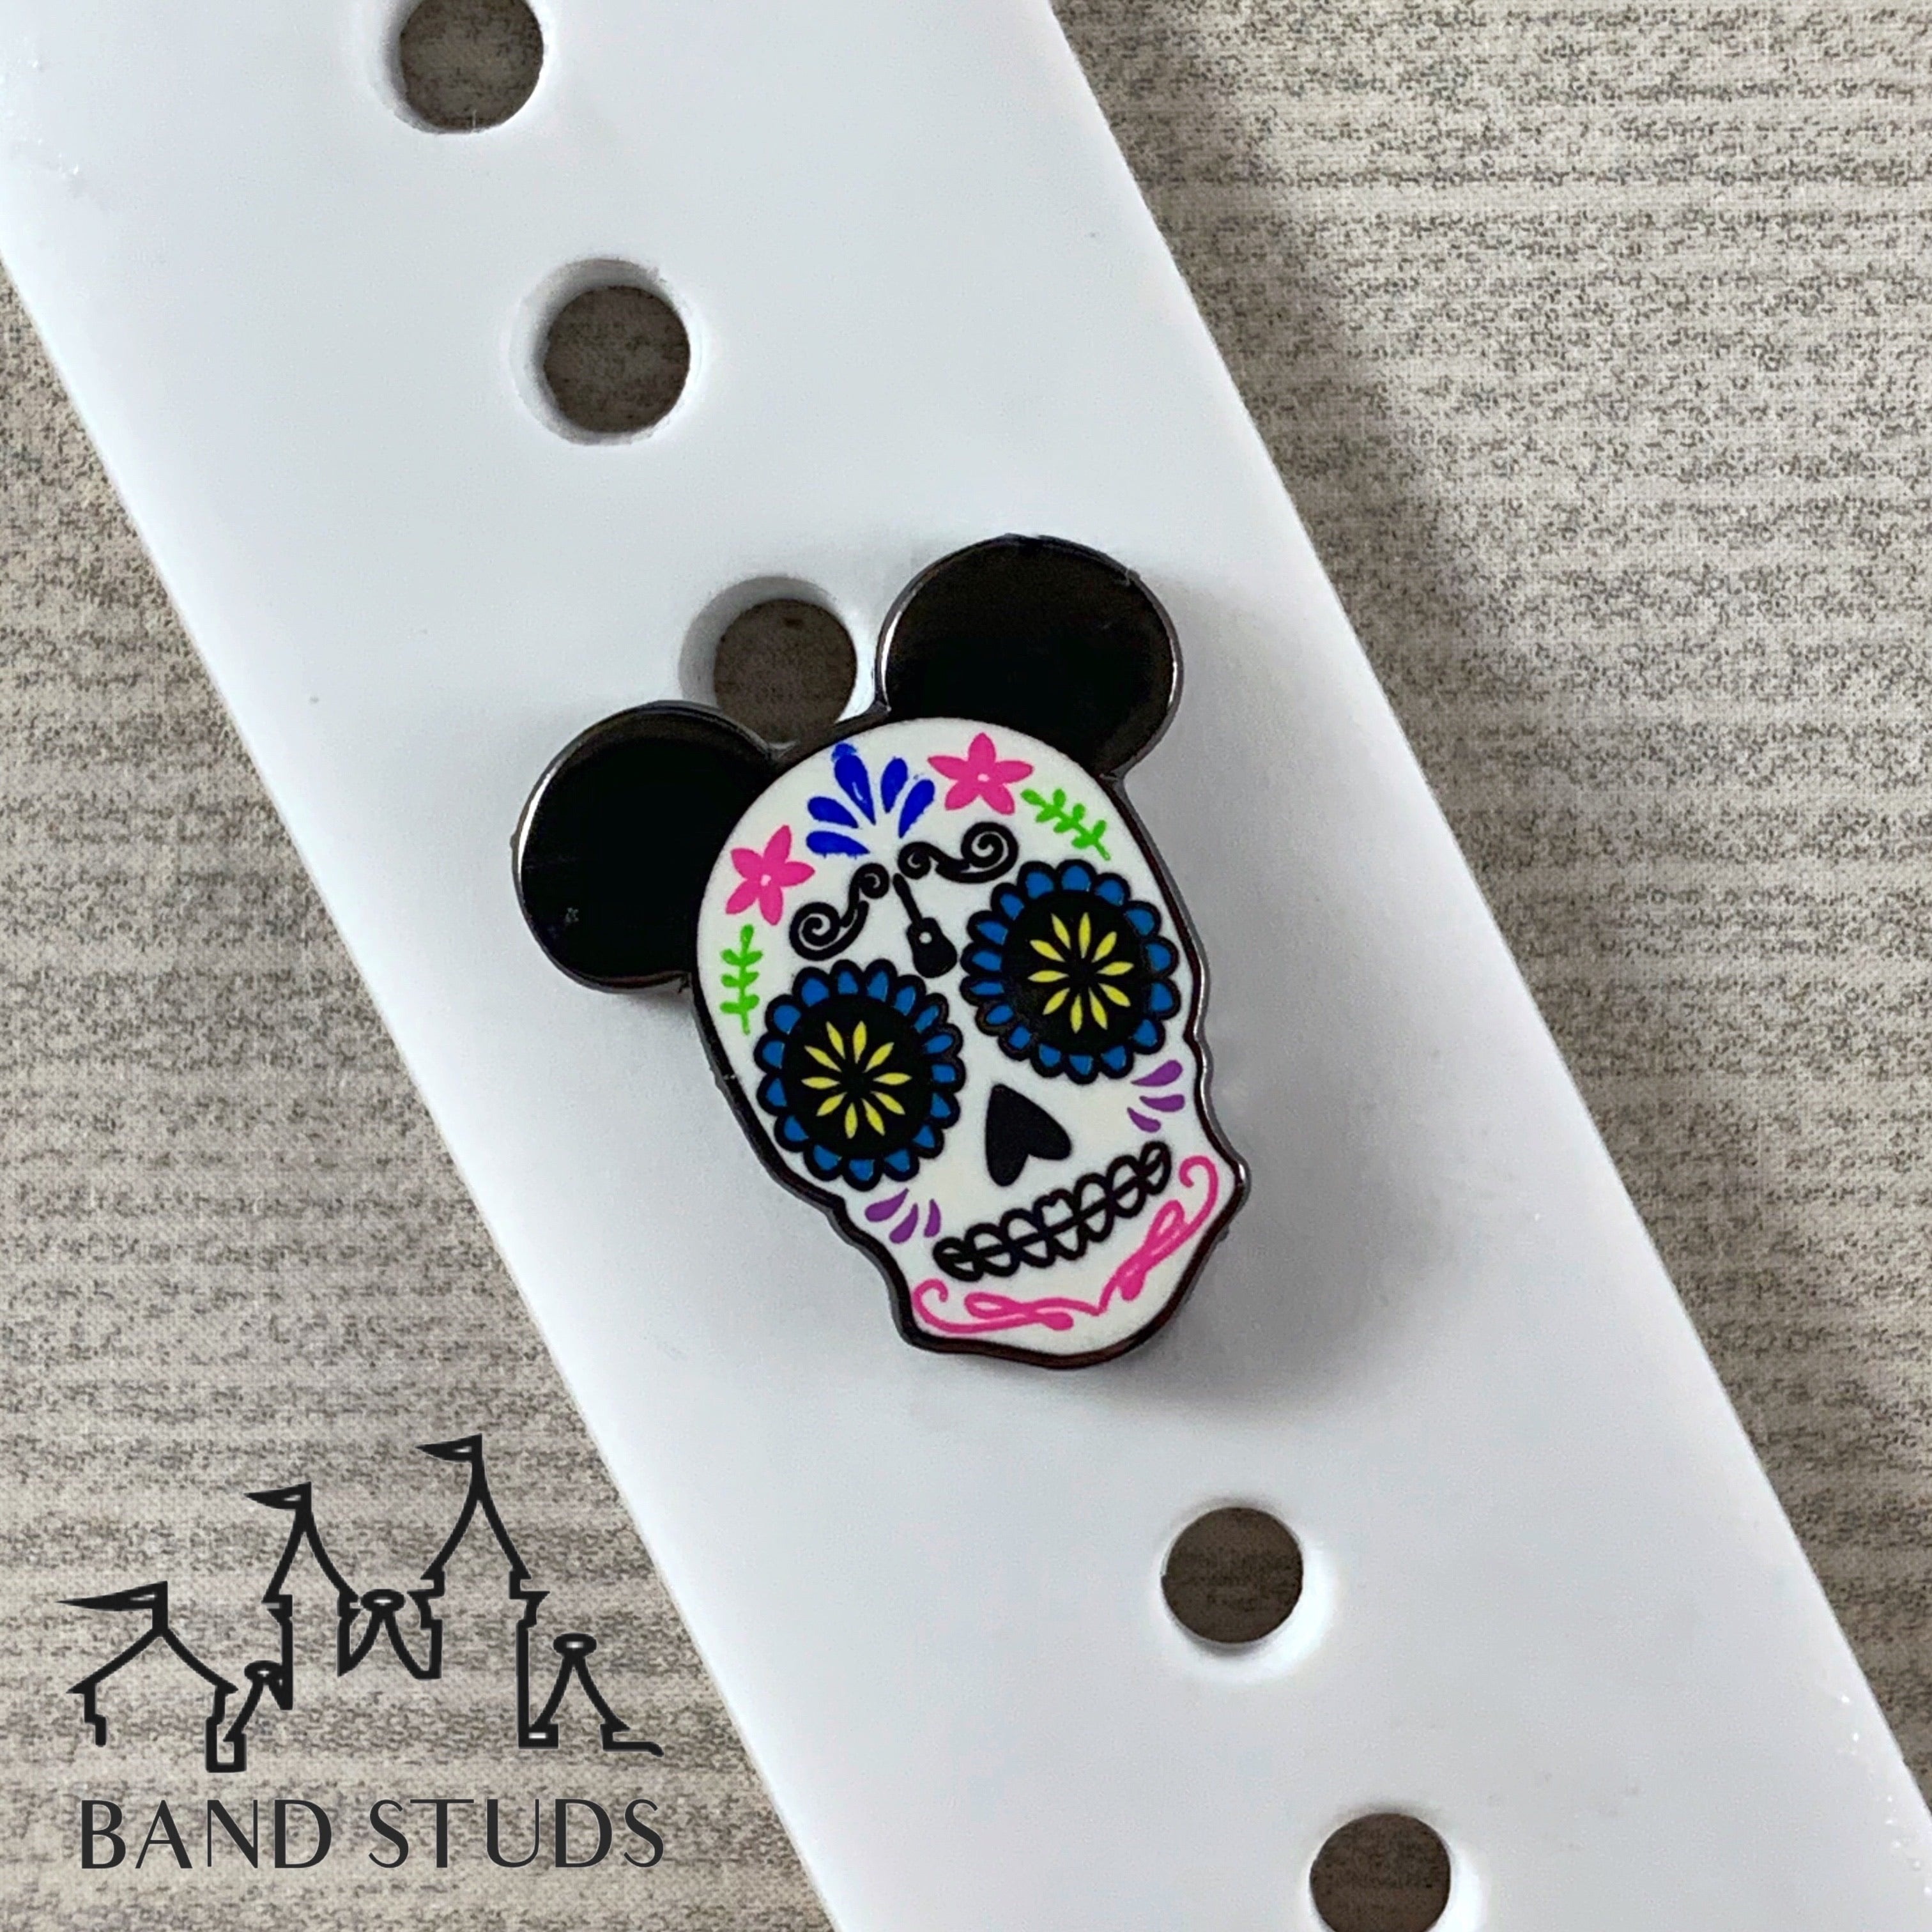 Band Stud® - Poco Loco Sugar Skull READY TO SHIP